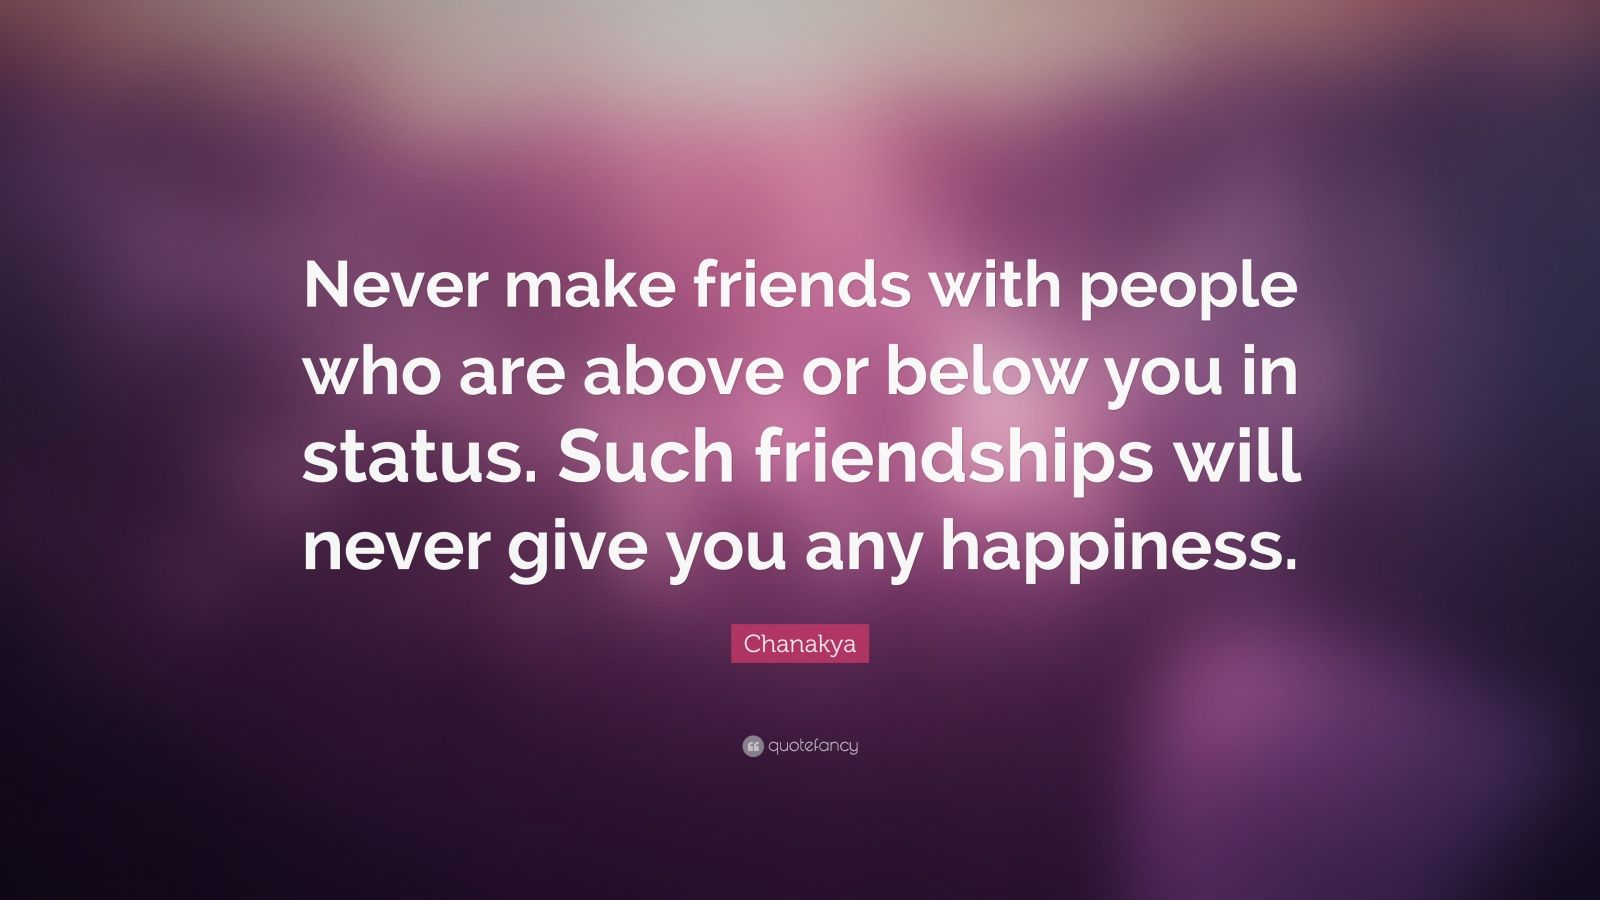 """Chanakya Quote: """"Never make friends with people who are above or below you in status. Such friendships will never give you any happiness."""""""